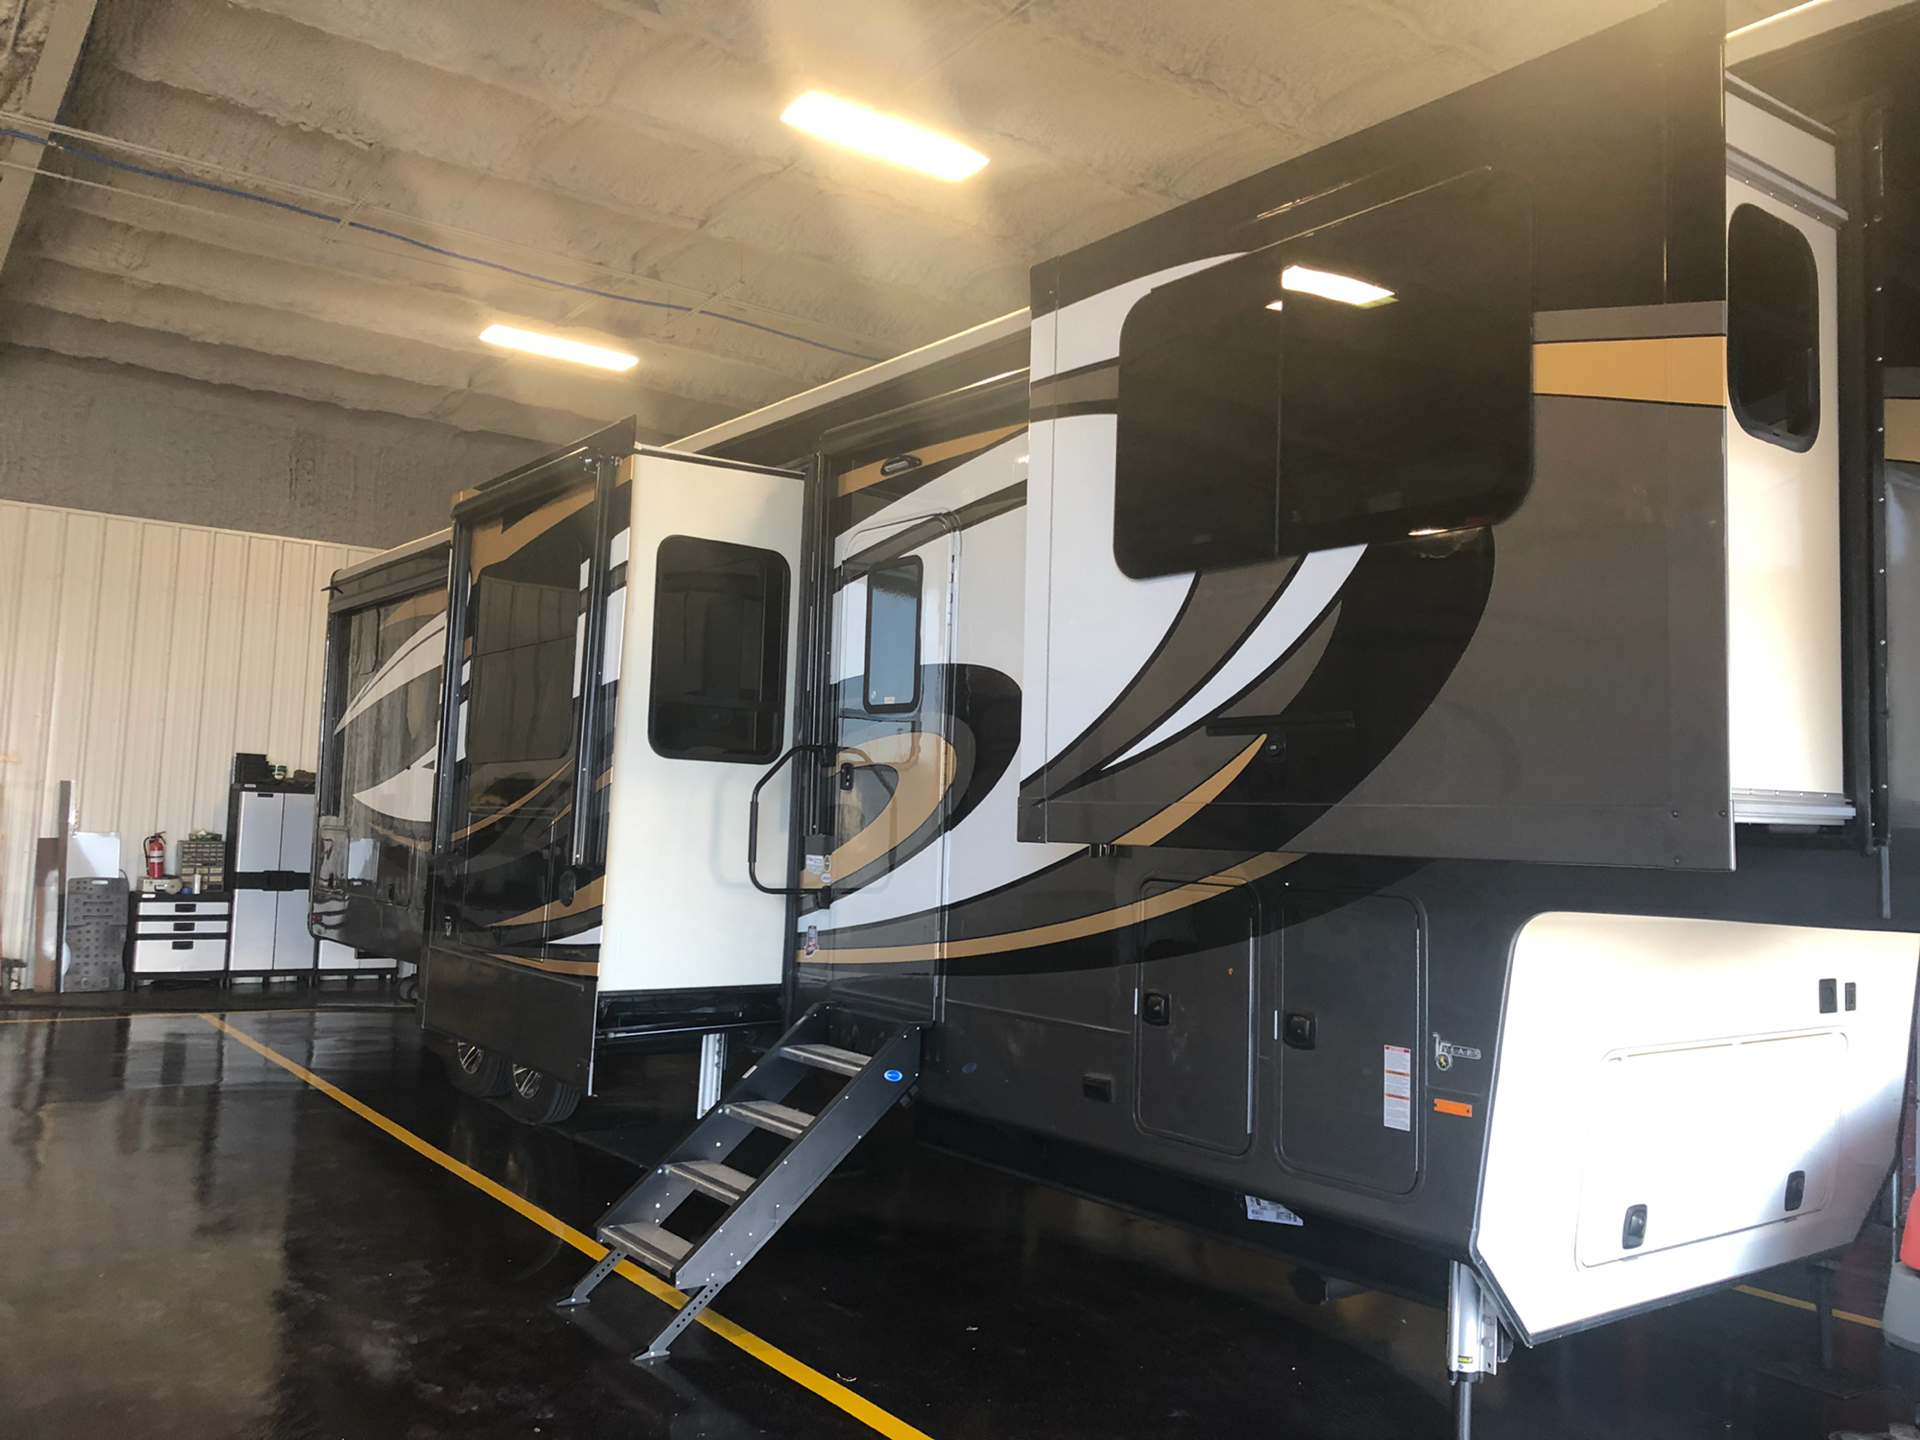 2020 Heartland Rvs LM Lafayette in Wolfforth, Texas - Photo 1